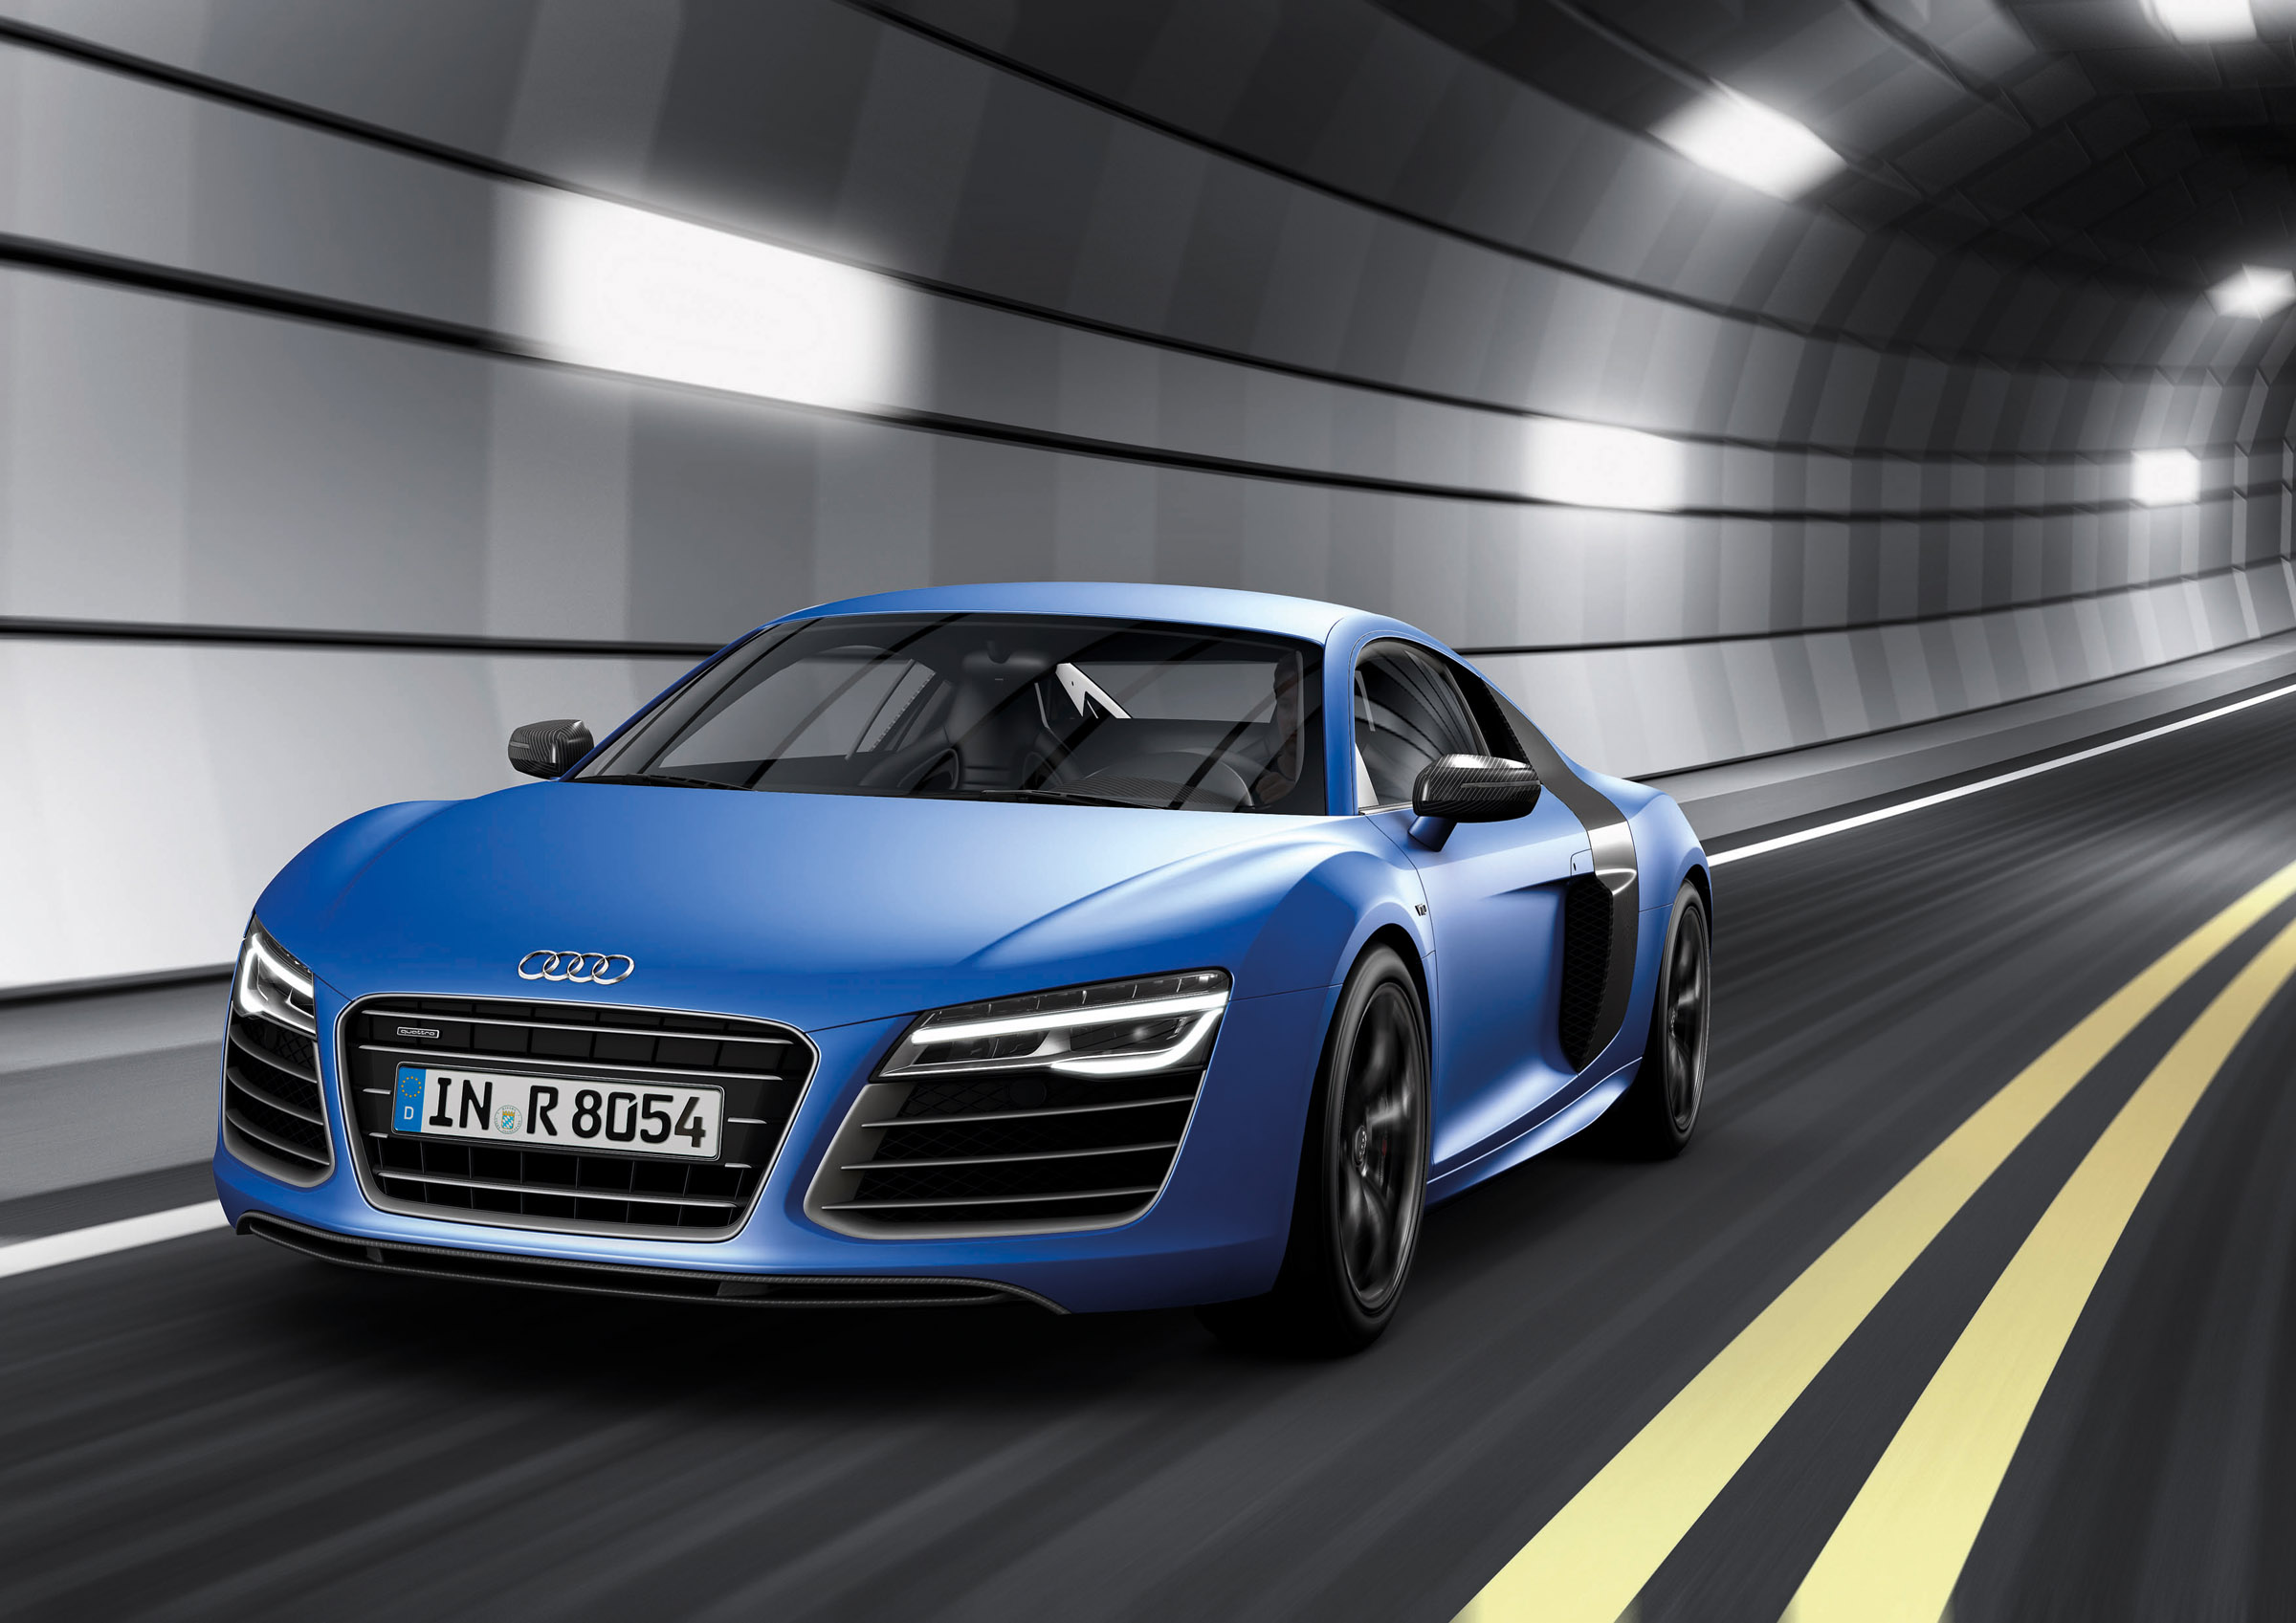 2013 Blue Audi R8 V10 plus Front View